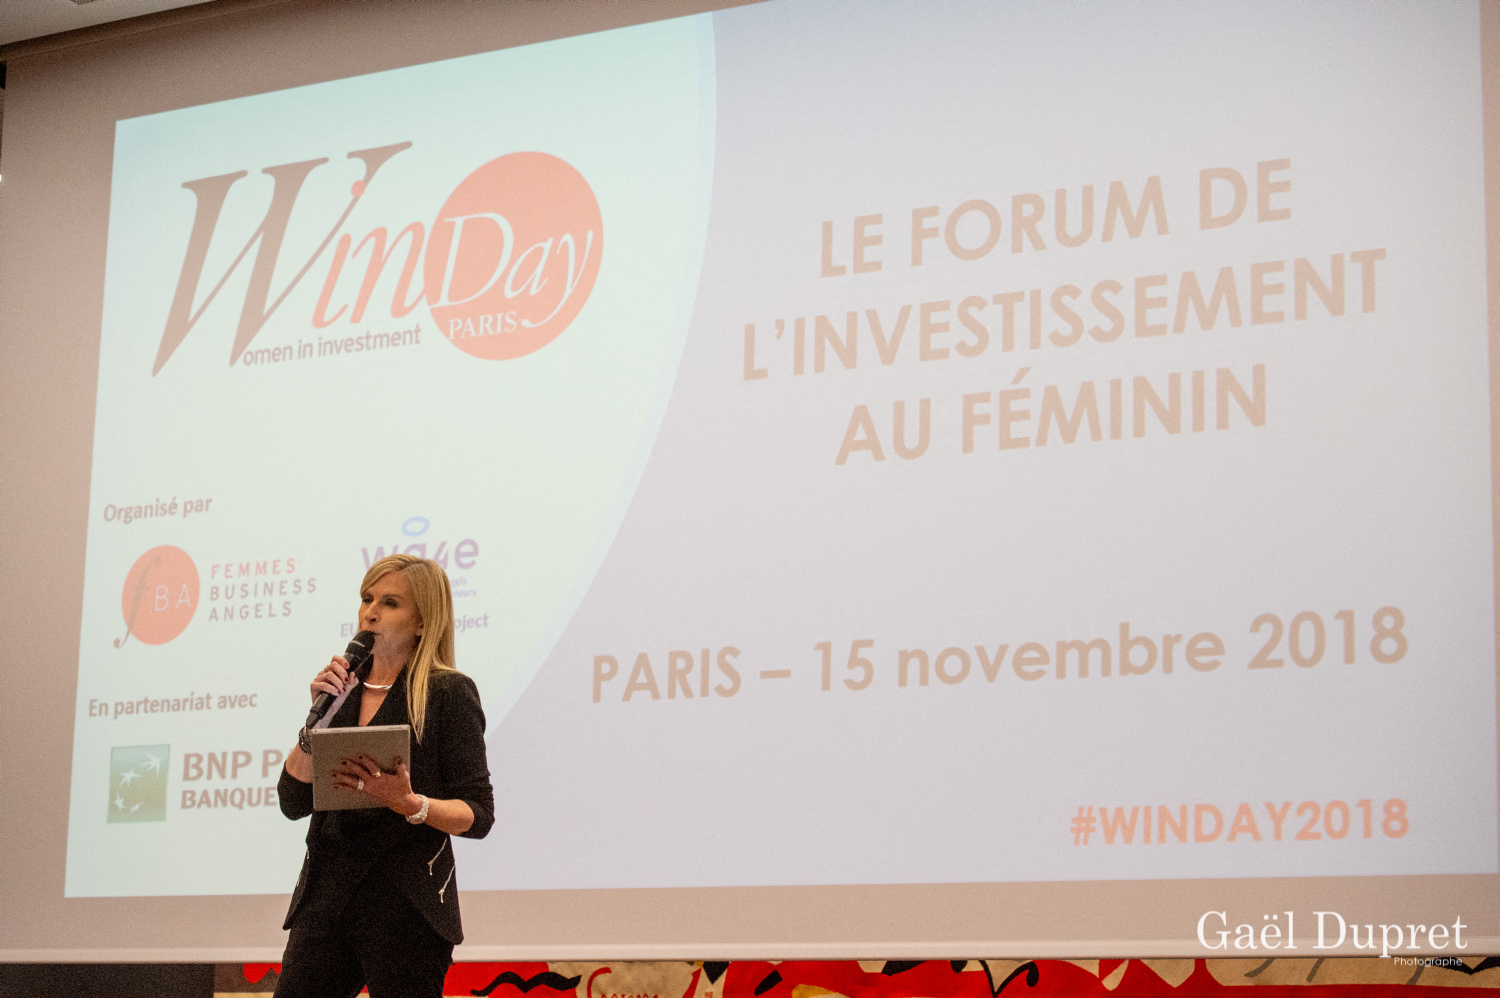 ©Gaël Dupret, France, Paris le 2018-11-15 : 2ème édition des WINDAY Paris par FBA - Femmes Business Angels. Photo : Isabelle GOUNIN-LEVY, Journaliste économique sur LCI.  Isabelle GOUNIN-LEVY, Economic Journalist on LCI.